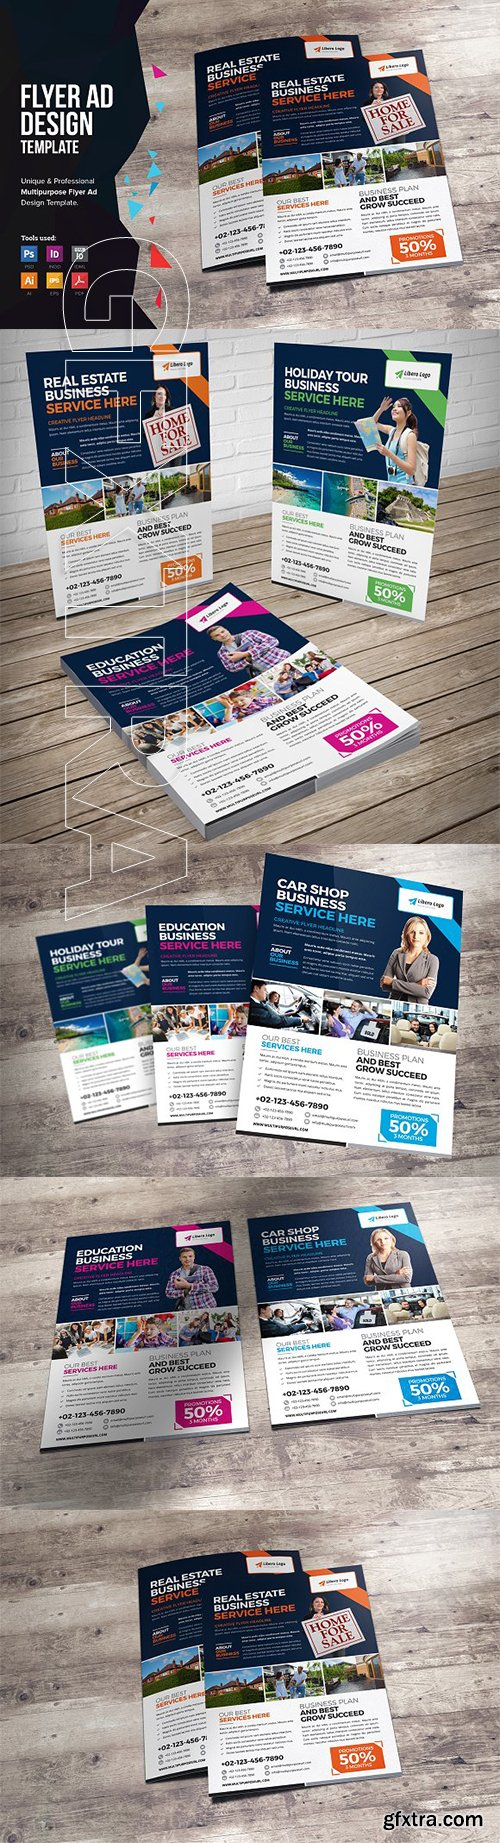 Multipurpose Flyer Design v3